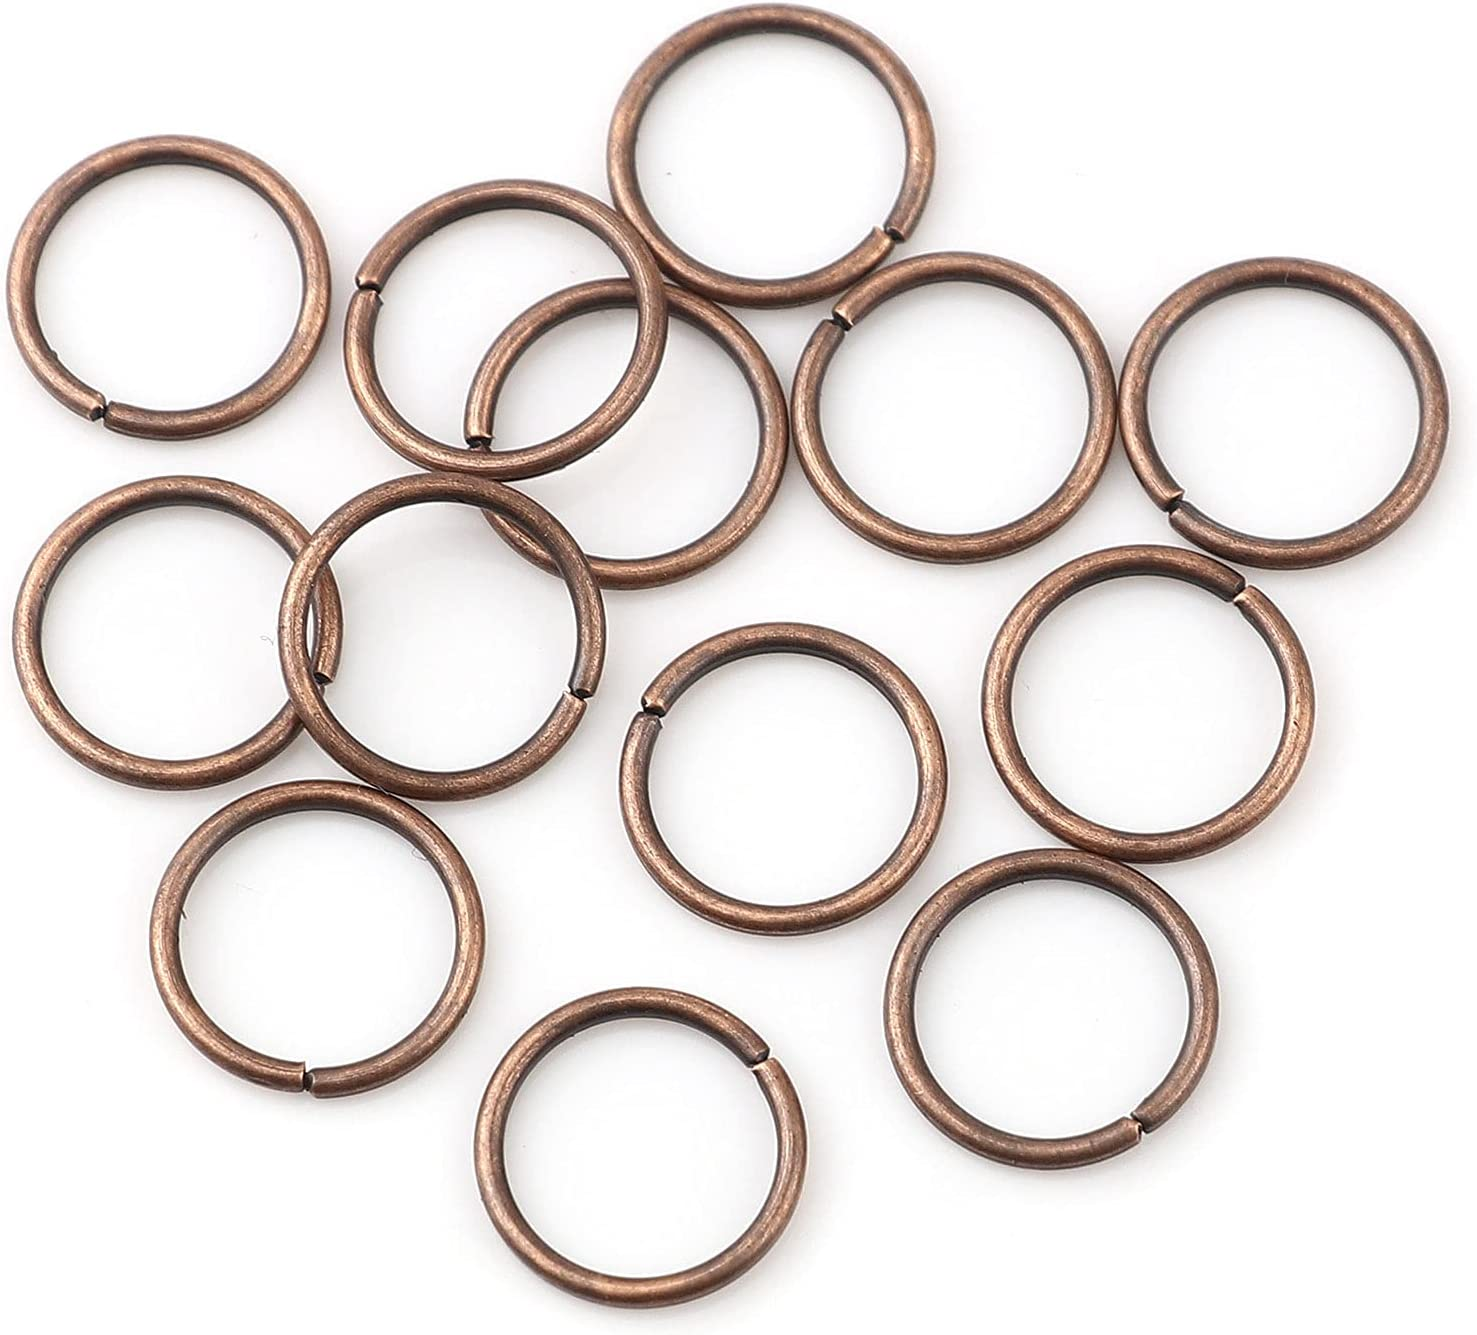 HDSupplies 200 Pieces - 4mm Jump Gauge Selling and selling Super sale Rings Copper 21 Antique